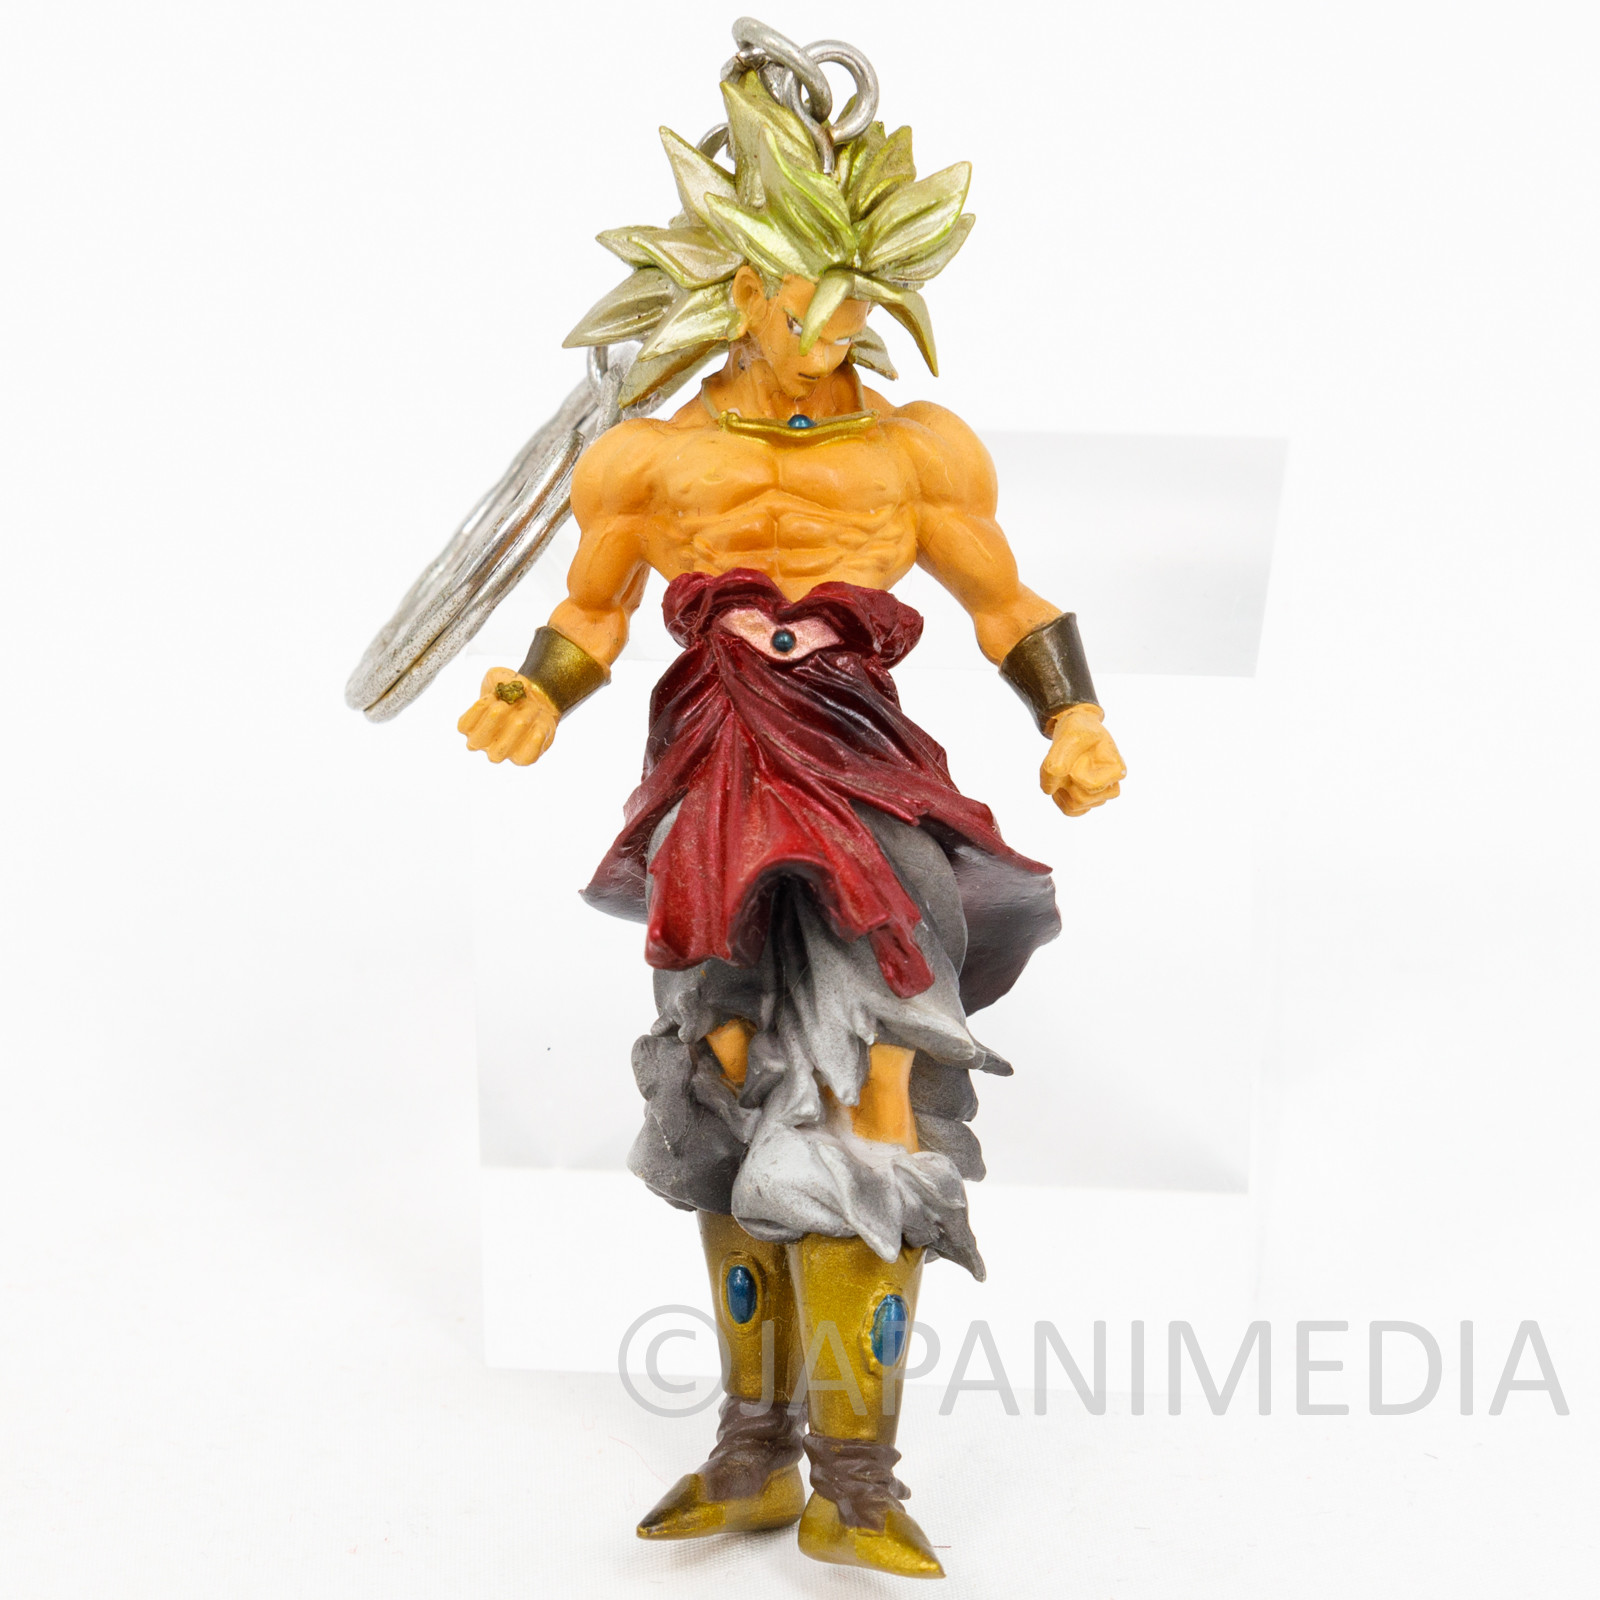 Dragon Ball Z Broly Figure Key Chain Holder JAPAN ANIME MANGA